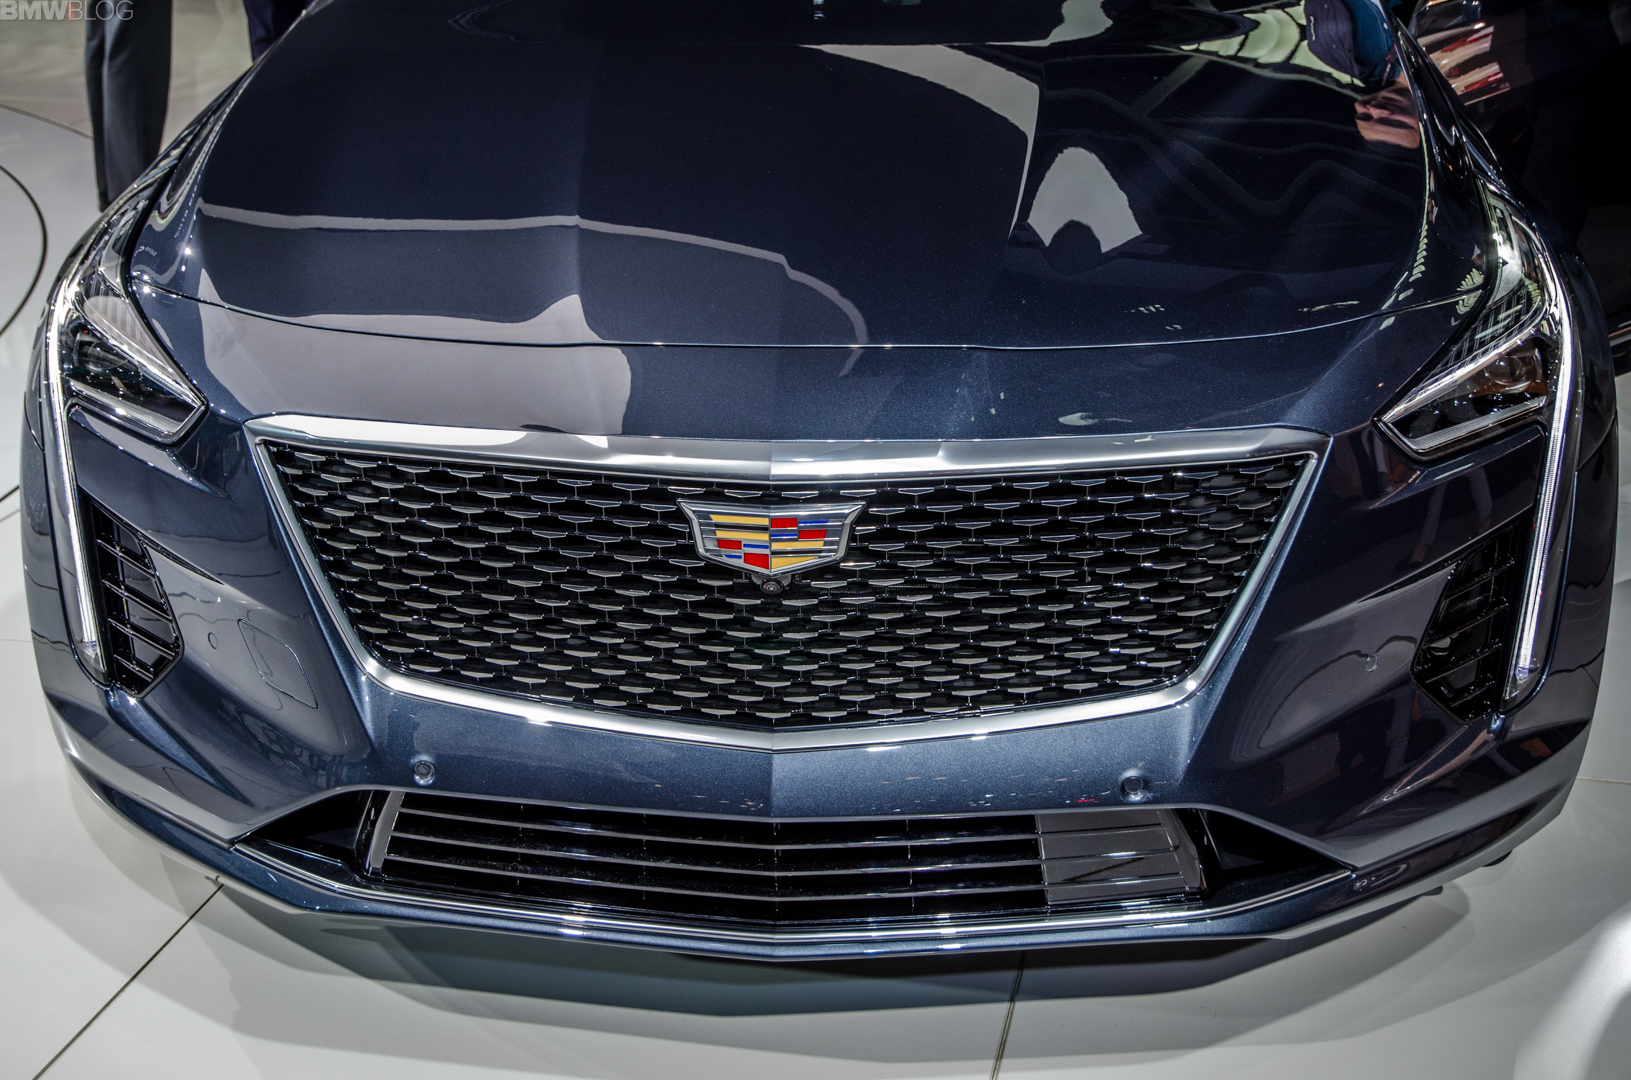 drive safety new all first earns pick news the iihs cadillac top from h